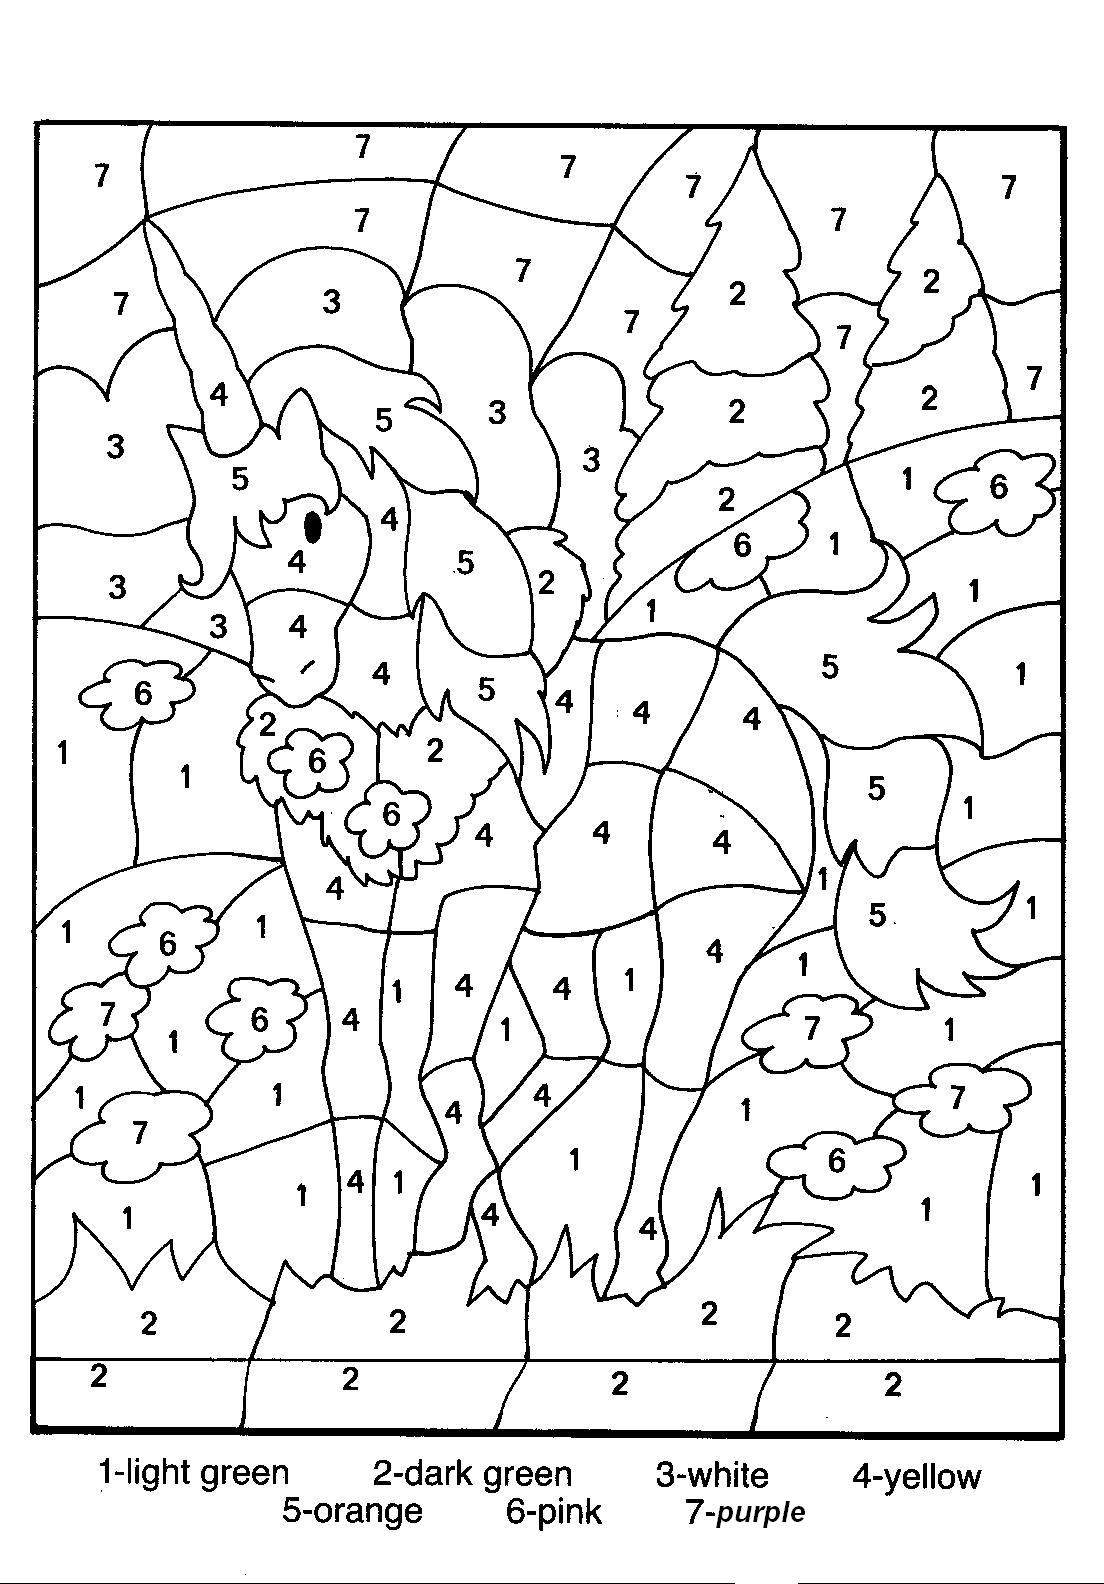 Coloring pages by numbers for kids - Free Printable Color By Number